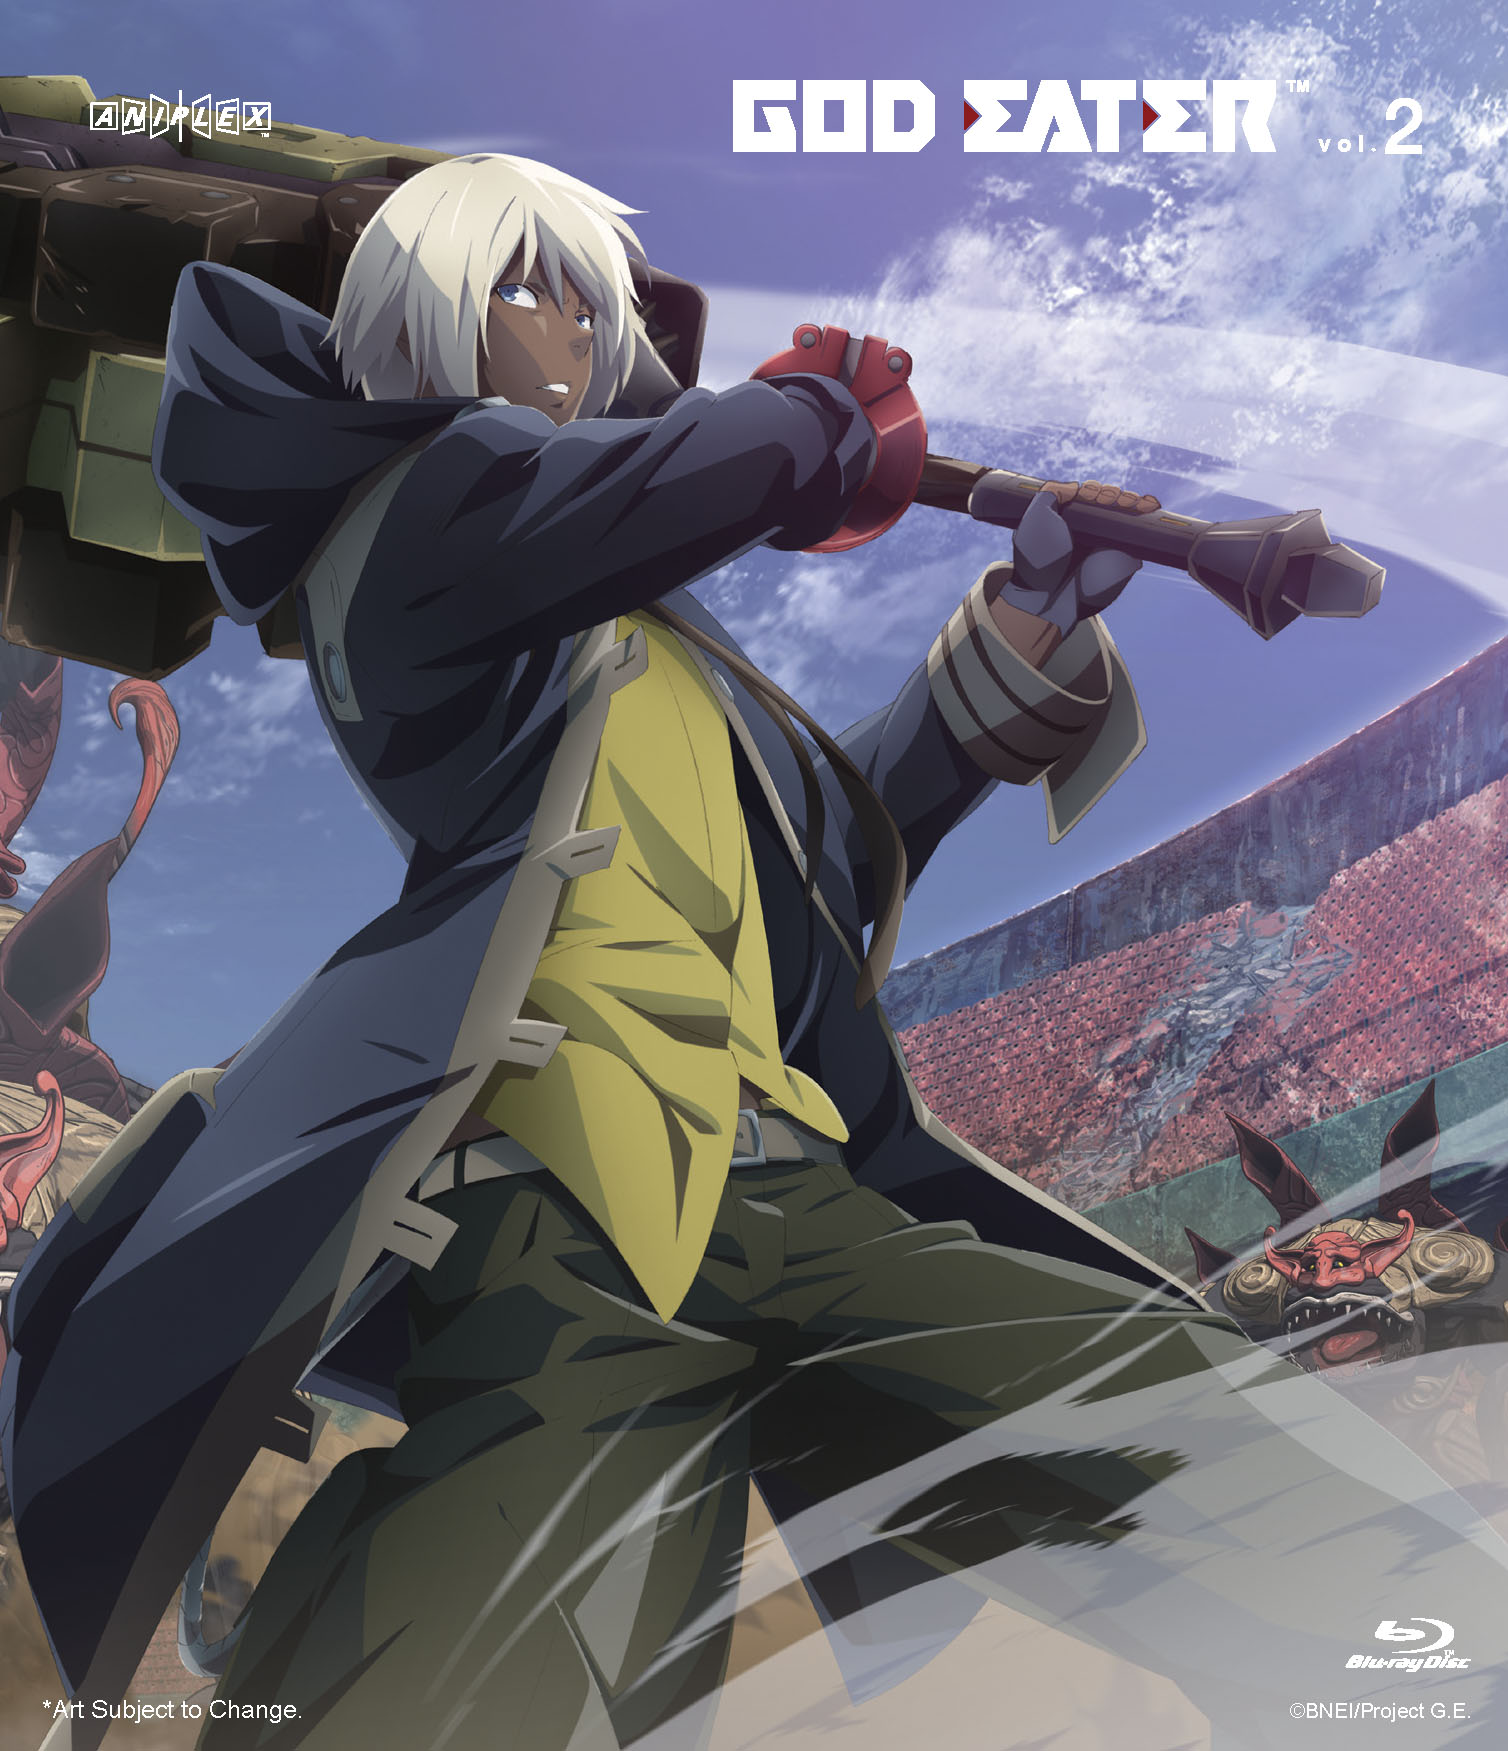 God Eater Volume 2 Blu-ray 851822006929